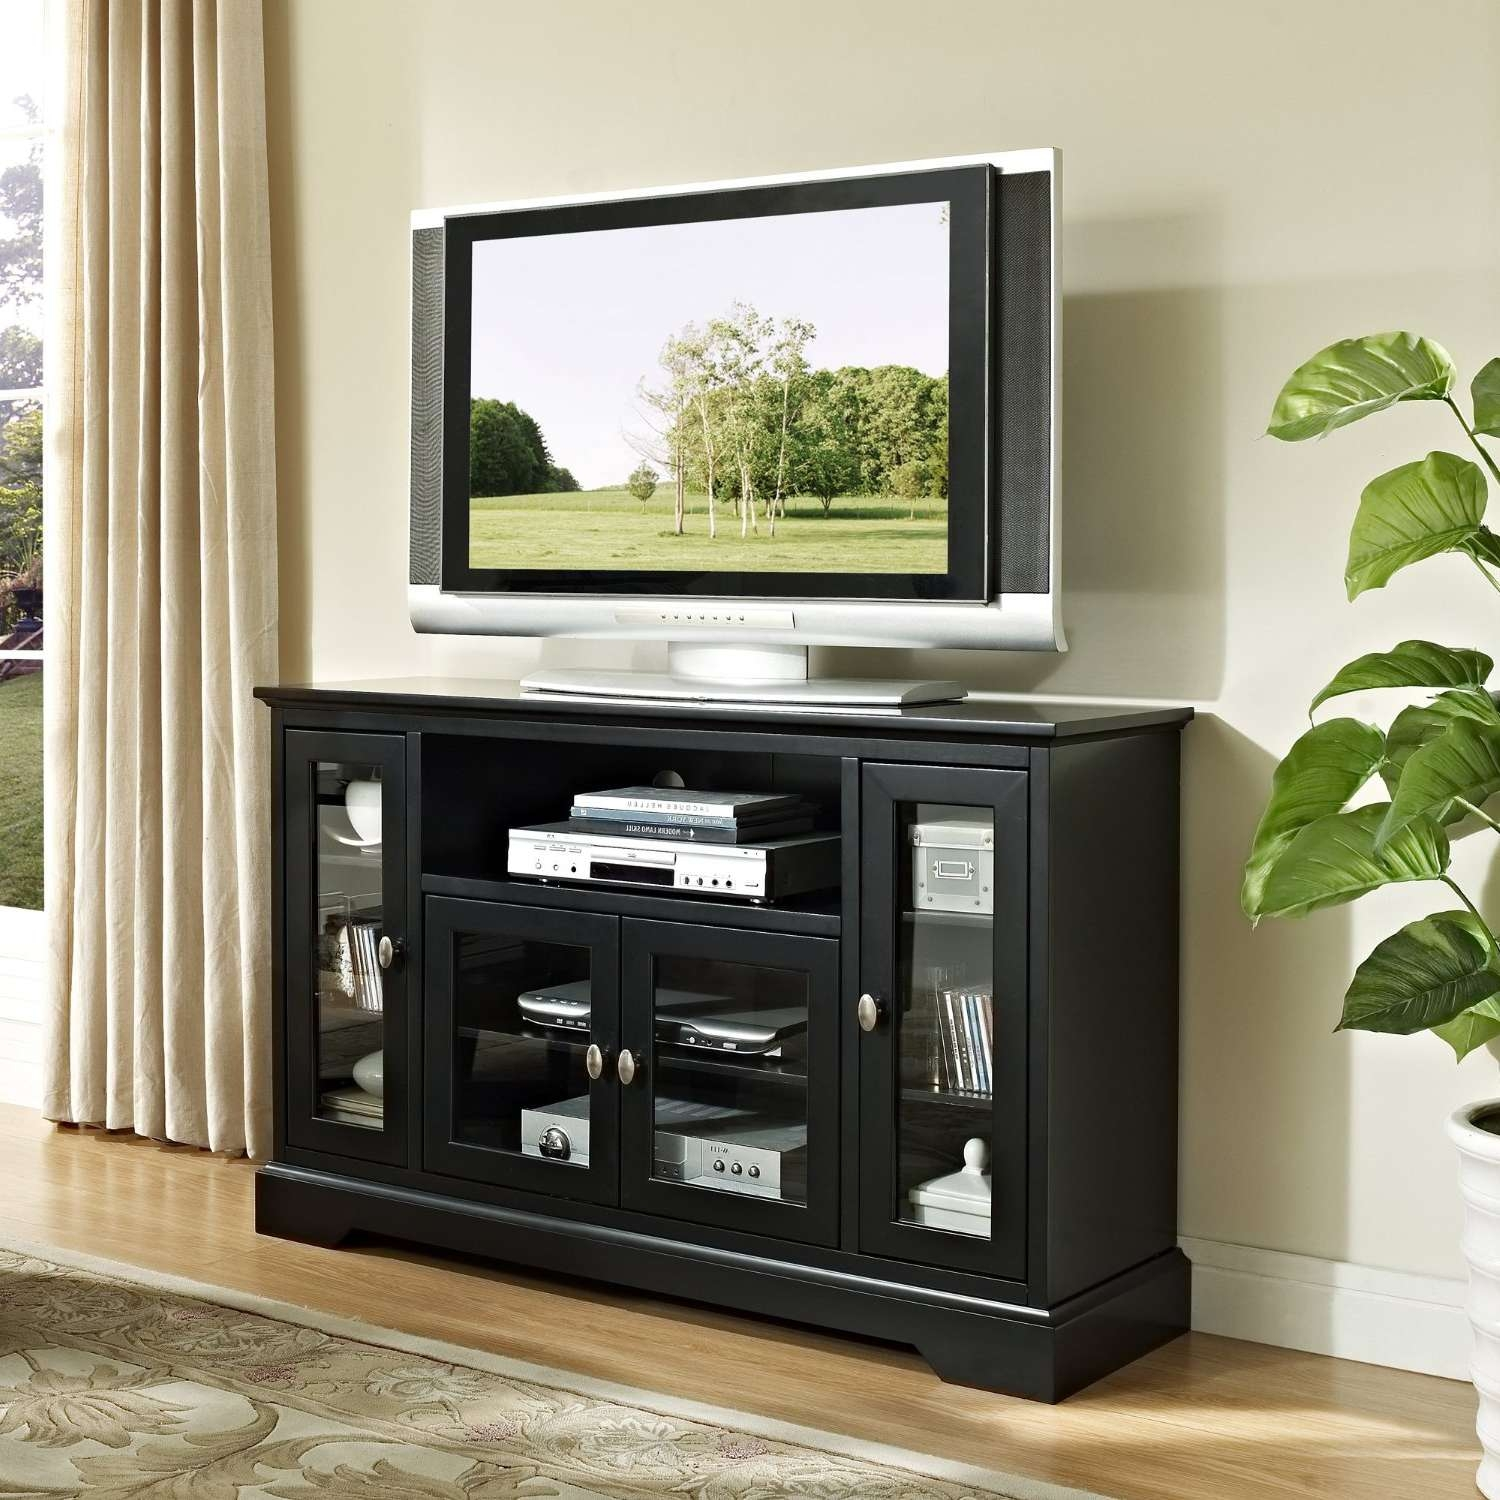 Light Wood Tv Stand Simple Room With Ikea Besta Media Cabinet Of Intended For Tv Cabinets With Glass Doors (View 14 of 20)